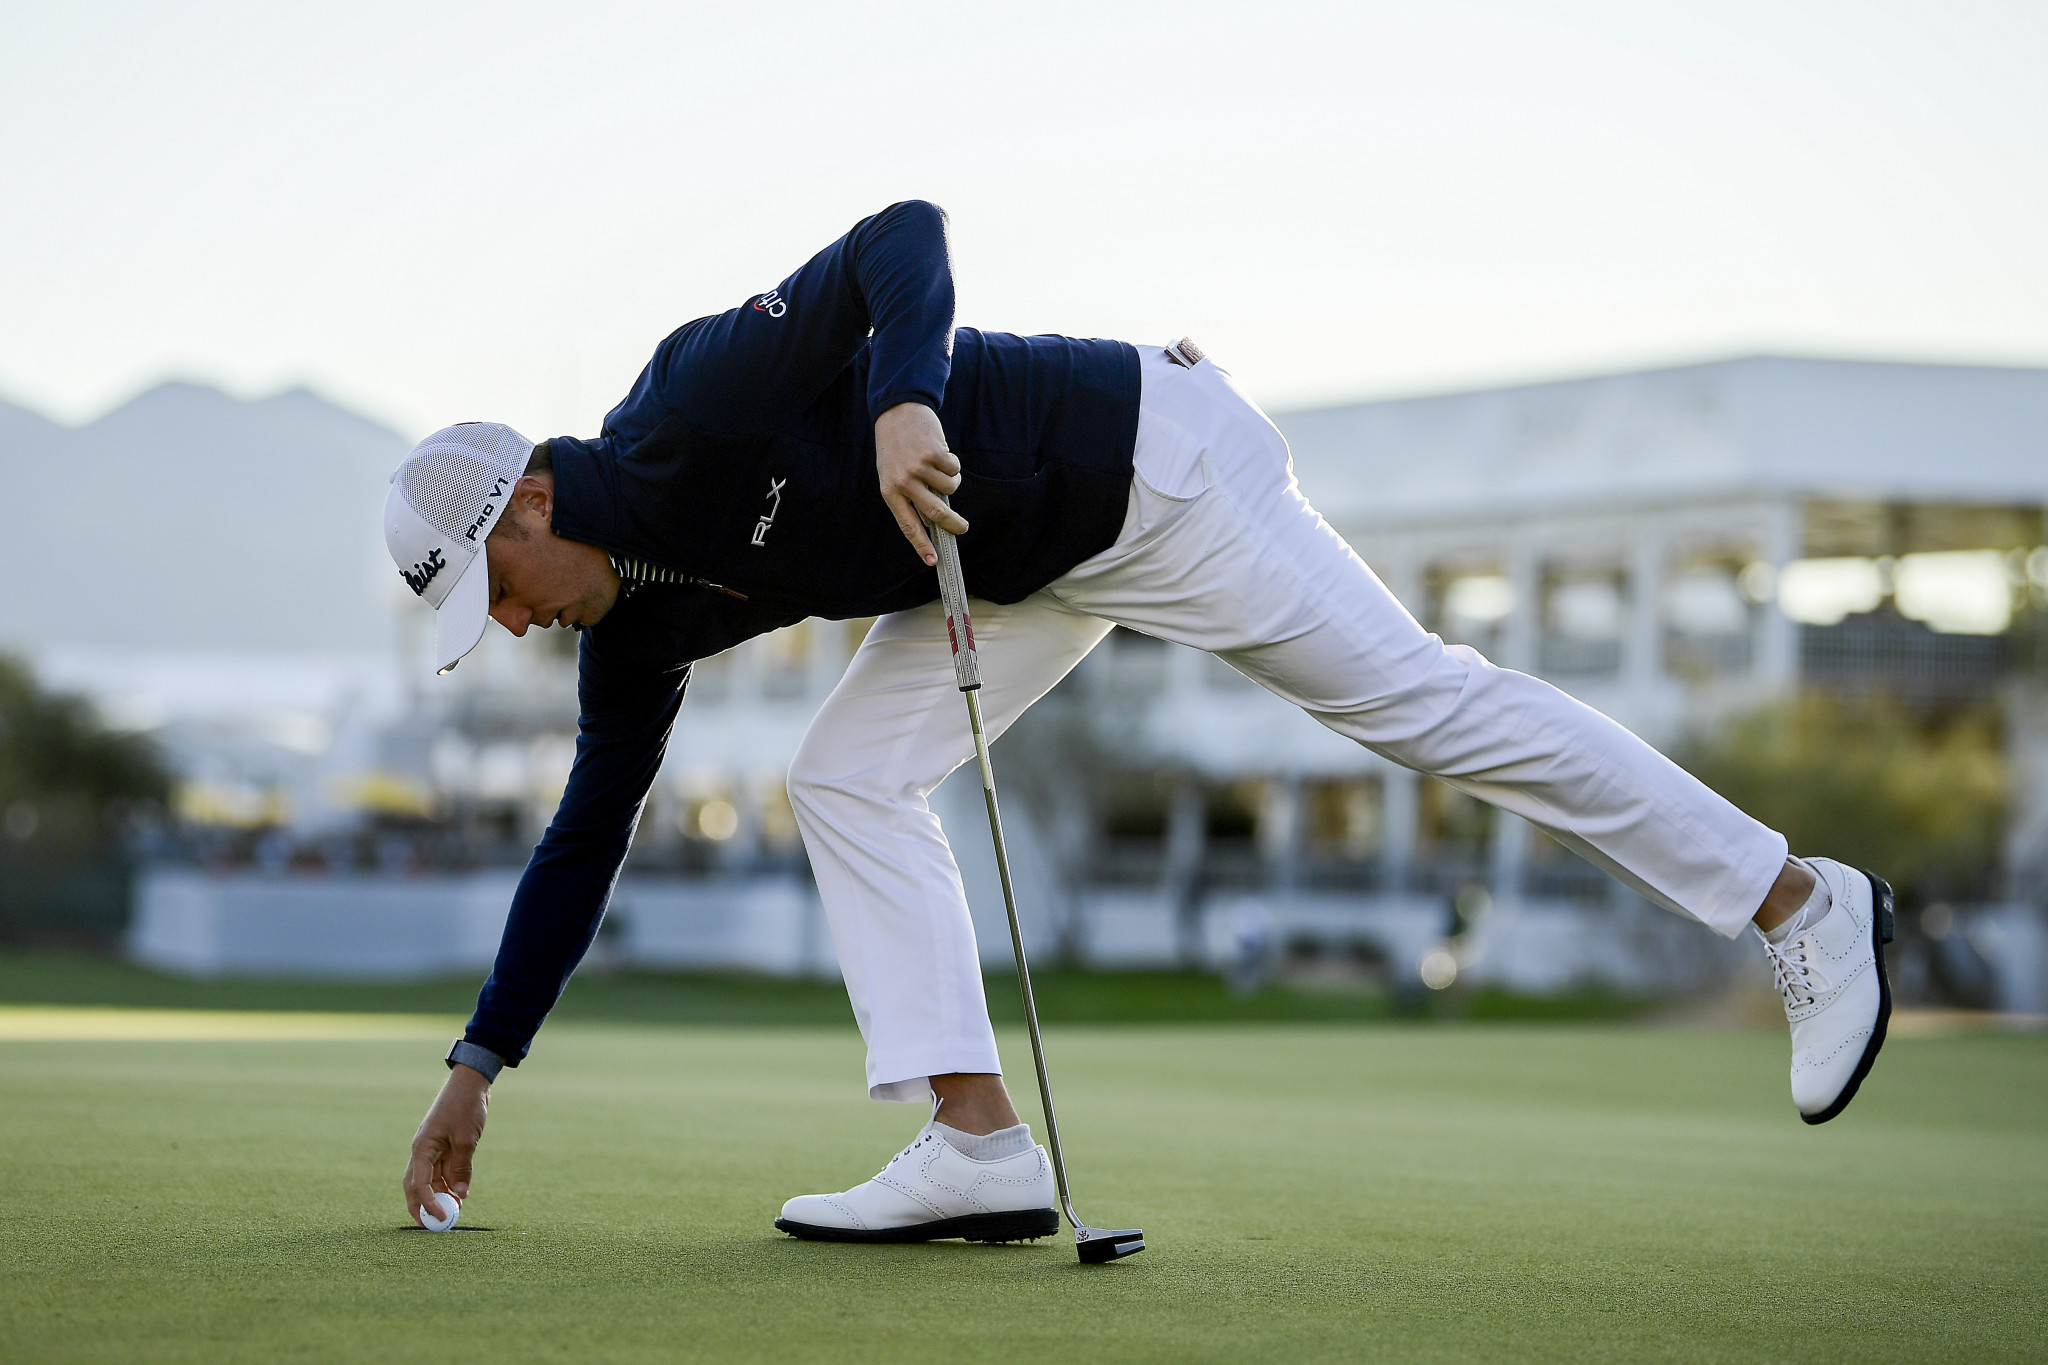 Thomas and Oosthuizen join Woods in committing to playing at Tokyo 2020